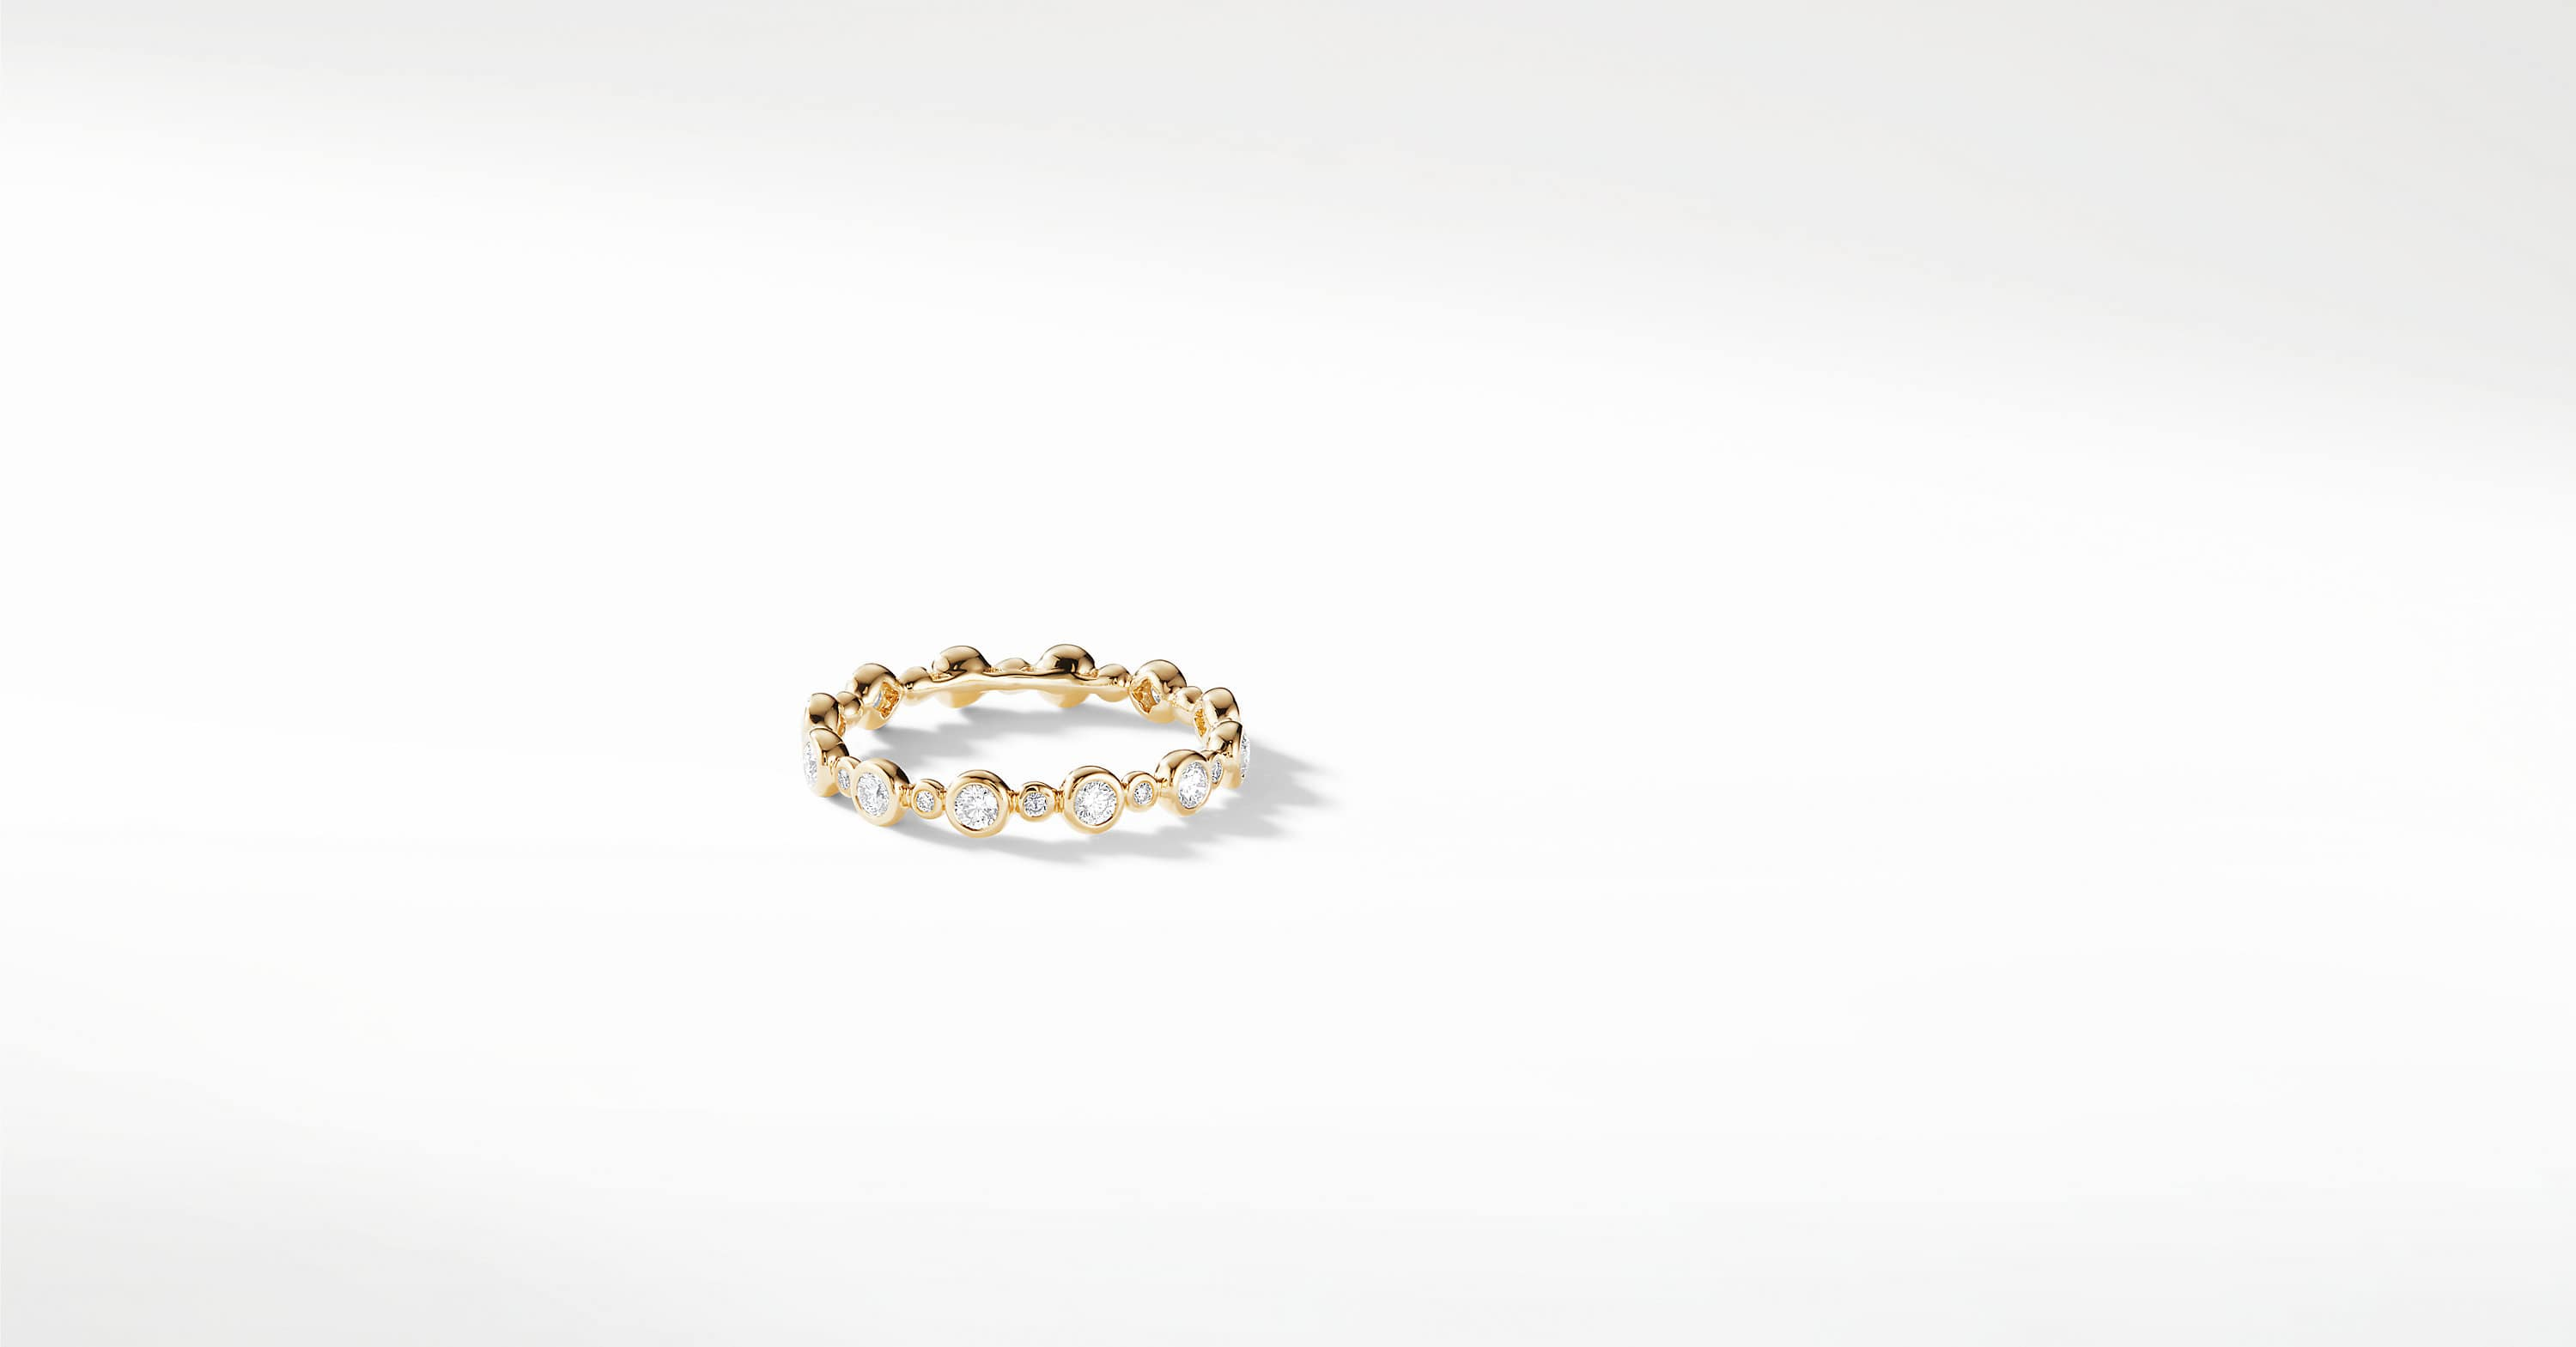 DY Starlight All Pavé Band Ring with Diamonds in 18K Gold